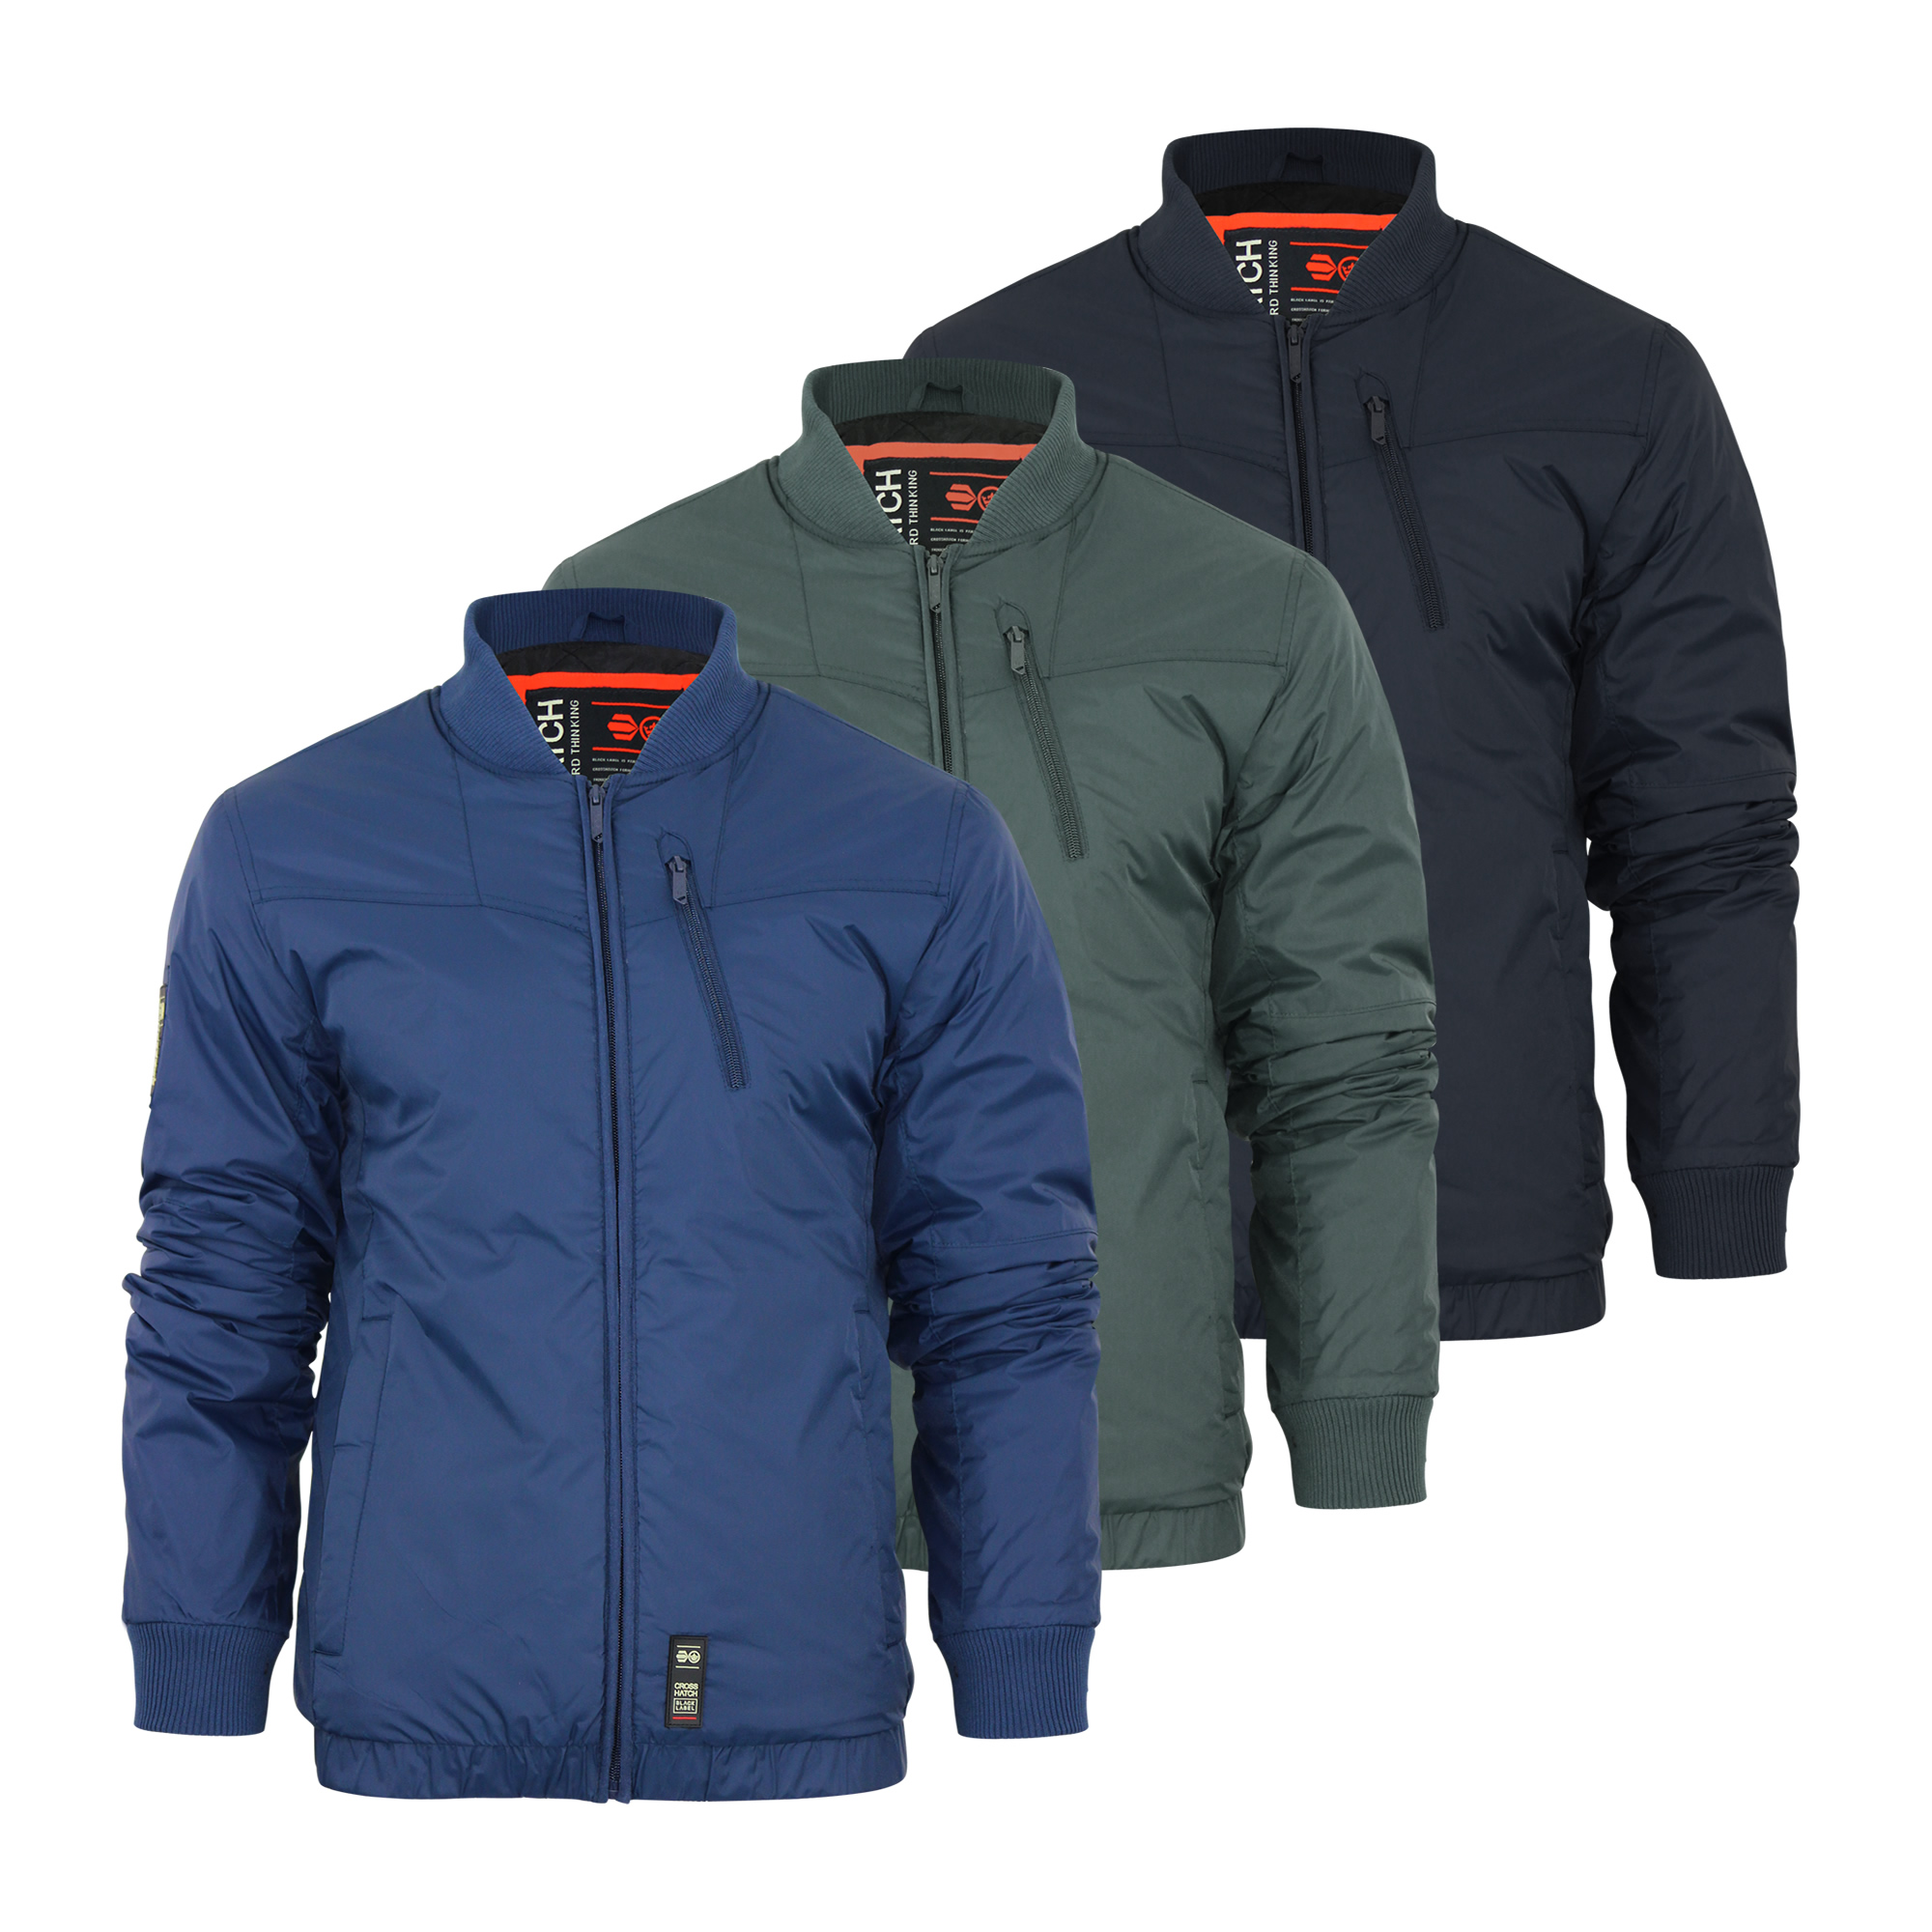 jack and jones jacket size guide